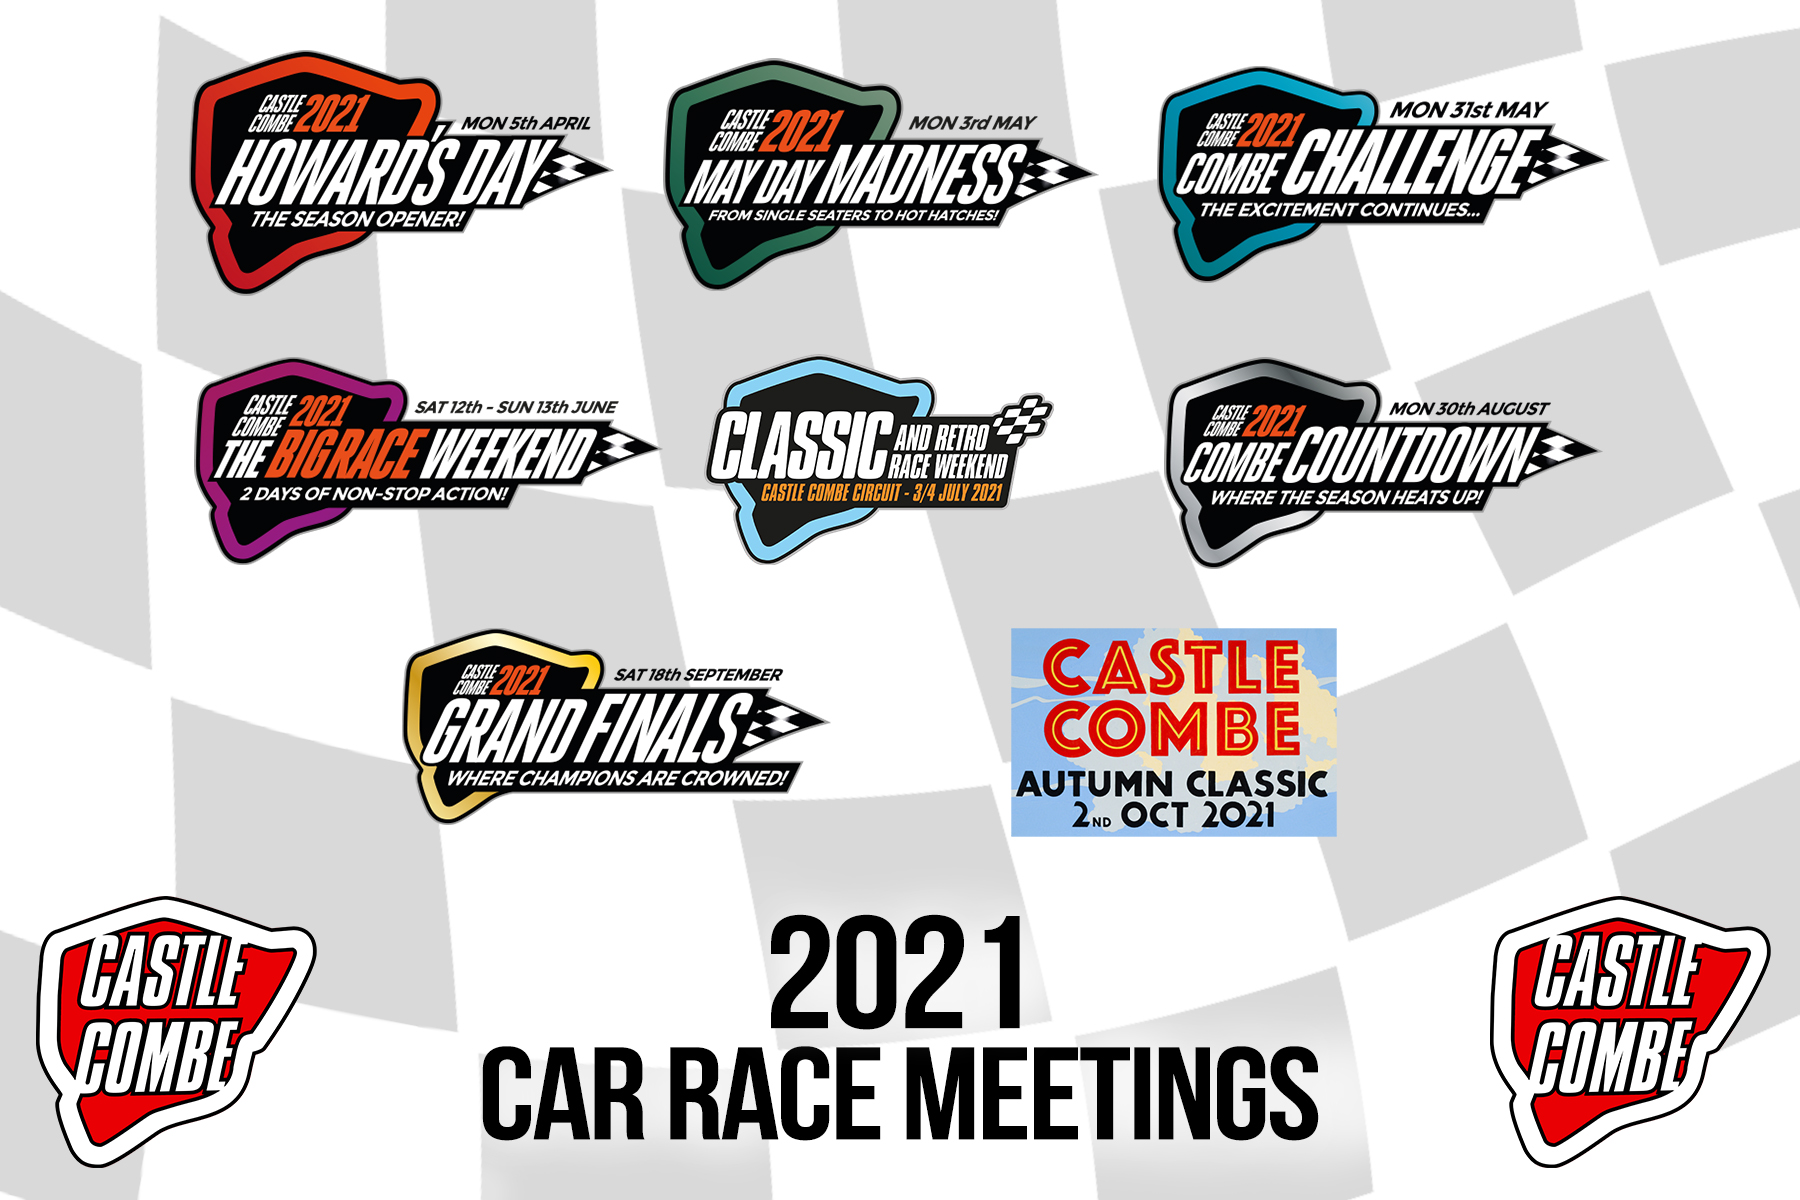 CASTLE COMBE CIRCUIT REVEALS ACTION-PACKED 2021 CAR RACE CALENDAR